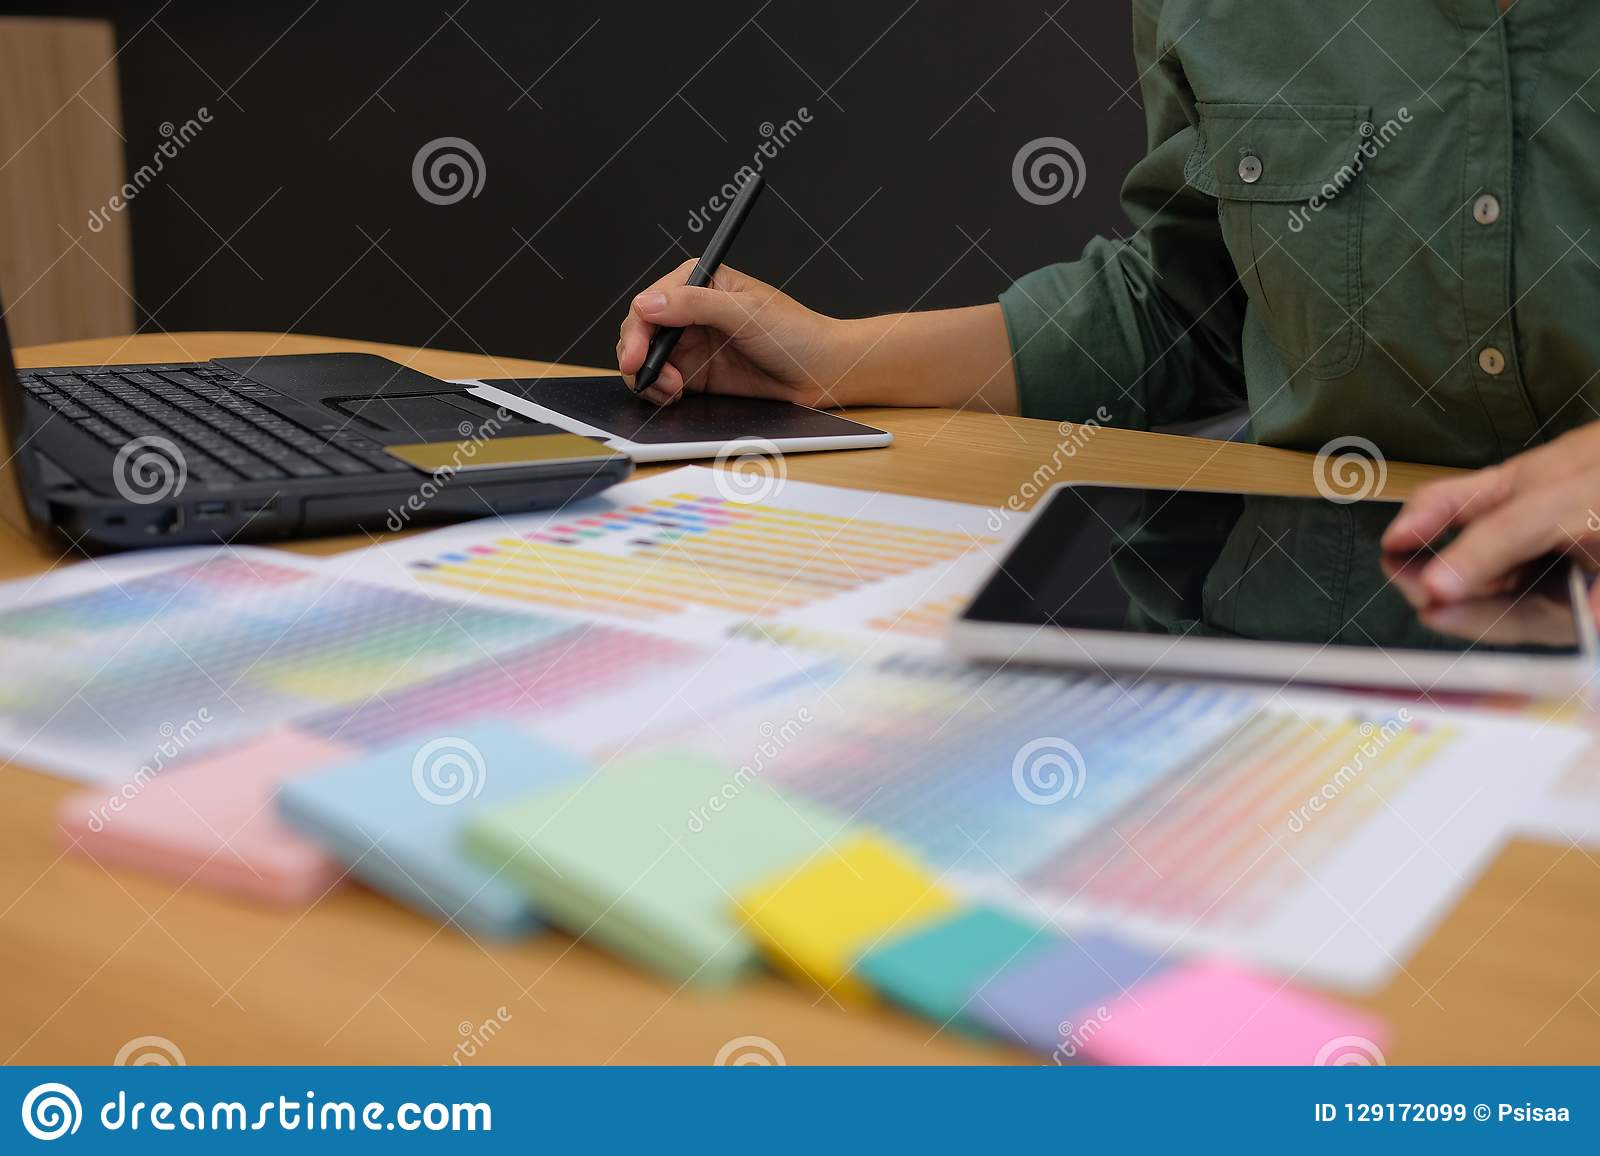 graphic interior designer working with tablet. creative man draw